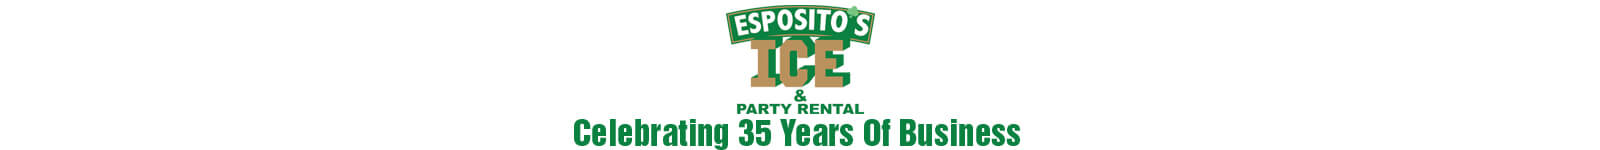 Esposito's Ice Celebrating 35 Years Banner